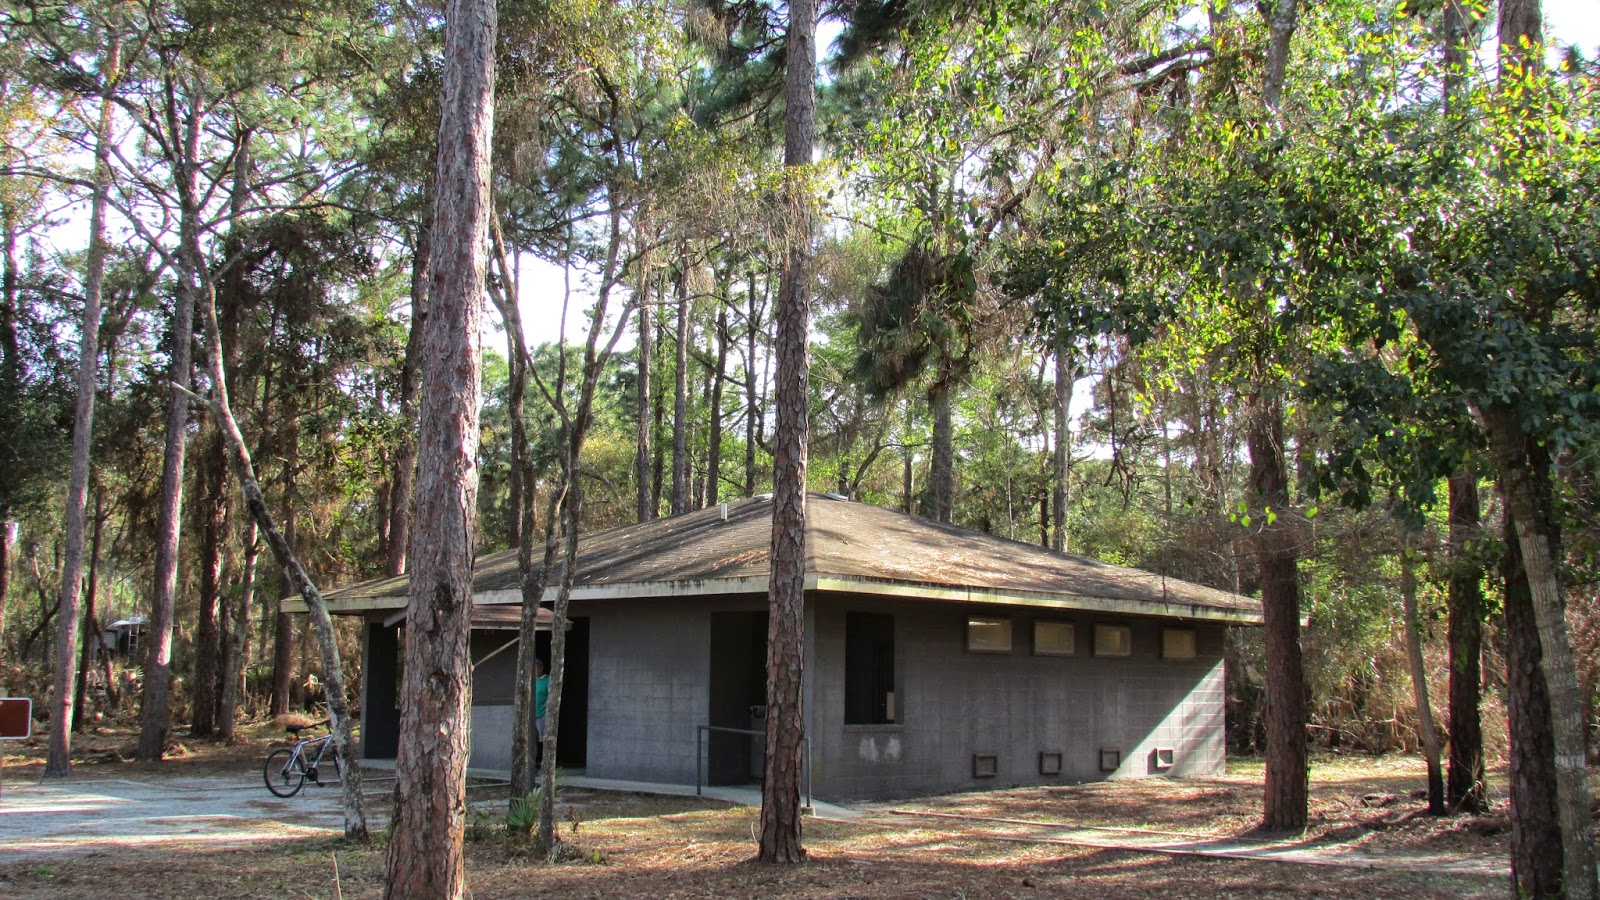 The Last Stop On Our Current Round Of Camping Is At Crooked River State Park  In St. Maryu0027s, GA. Although It Has Itu0027s Pretty Areas, The Campground Here  Is ...